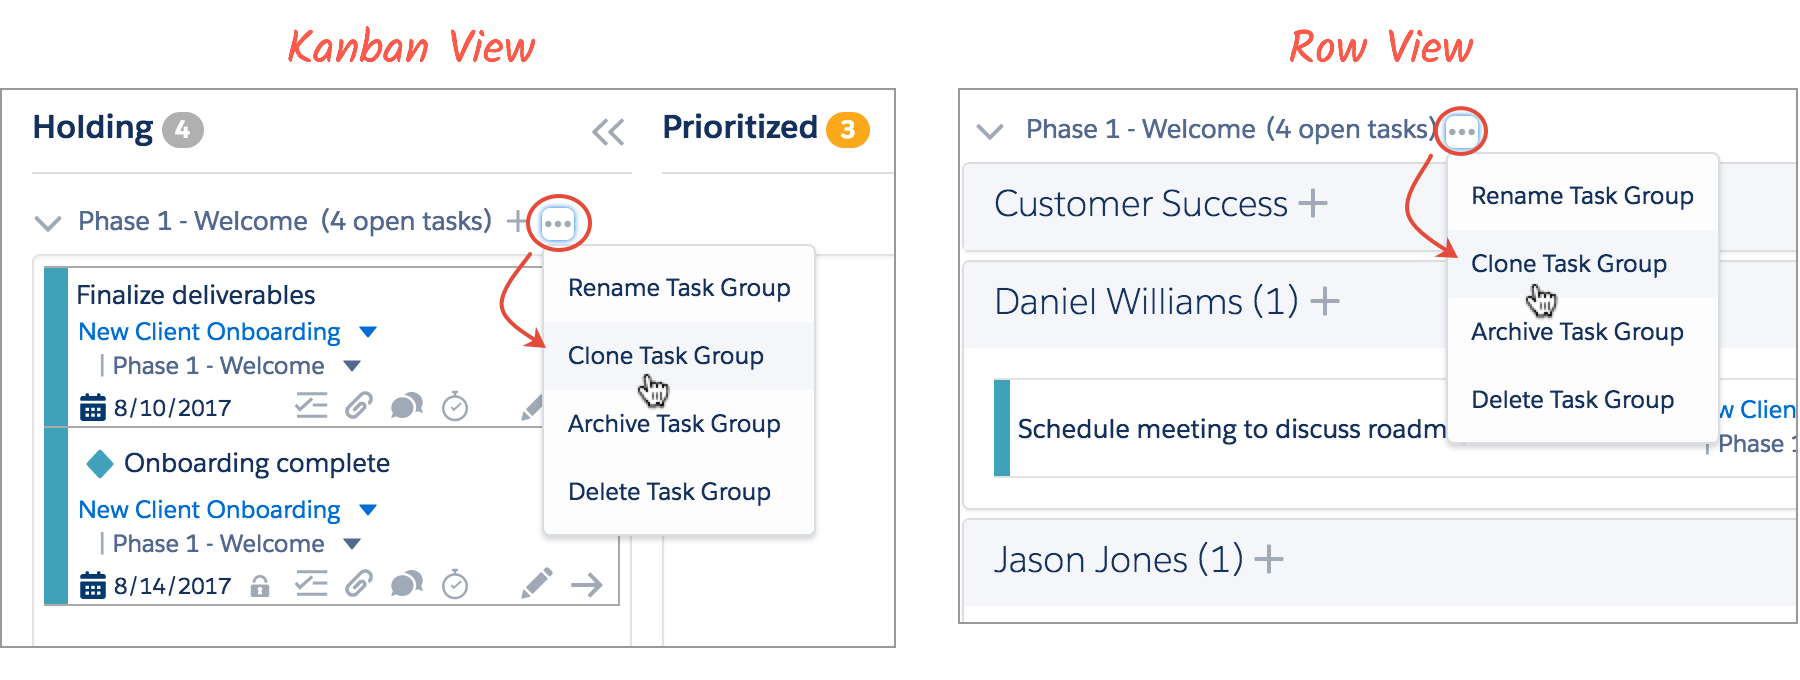 clone_task_group_more_actions_kanban_row.png